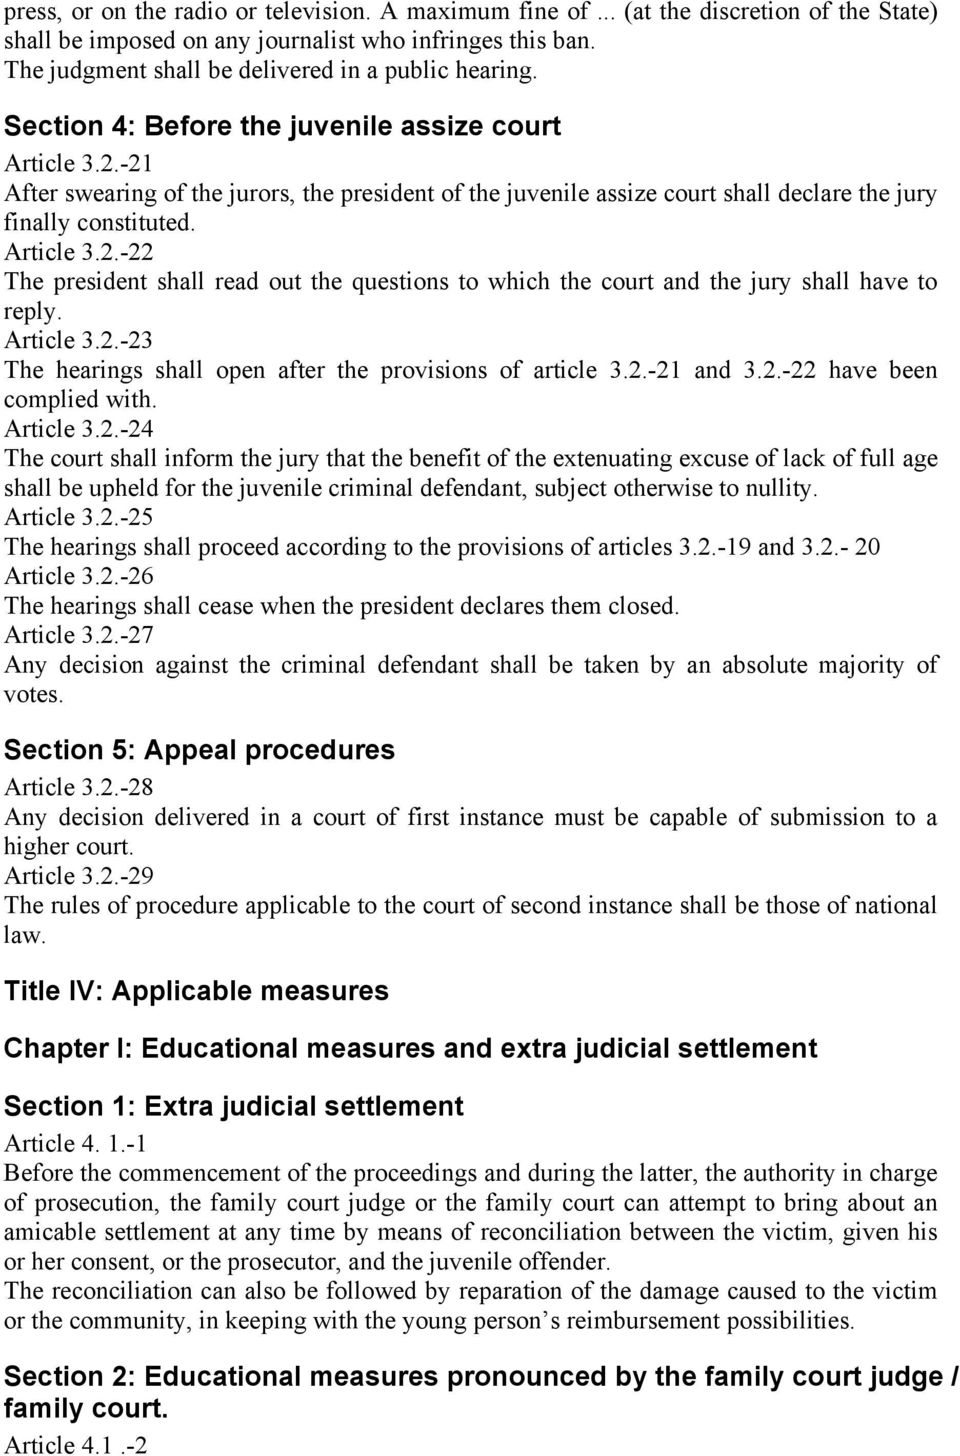 -21 After swearing of the jurors, the president of the juvenile assize court shall declare the jury finally constituted. Article 3.2.-22 The president shall read out the questions to which the court and the jury shall have to reply.